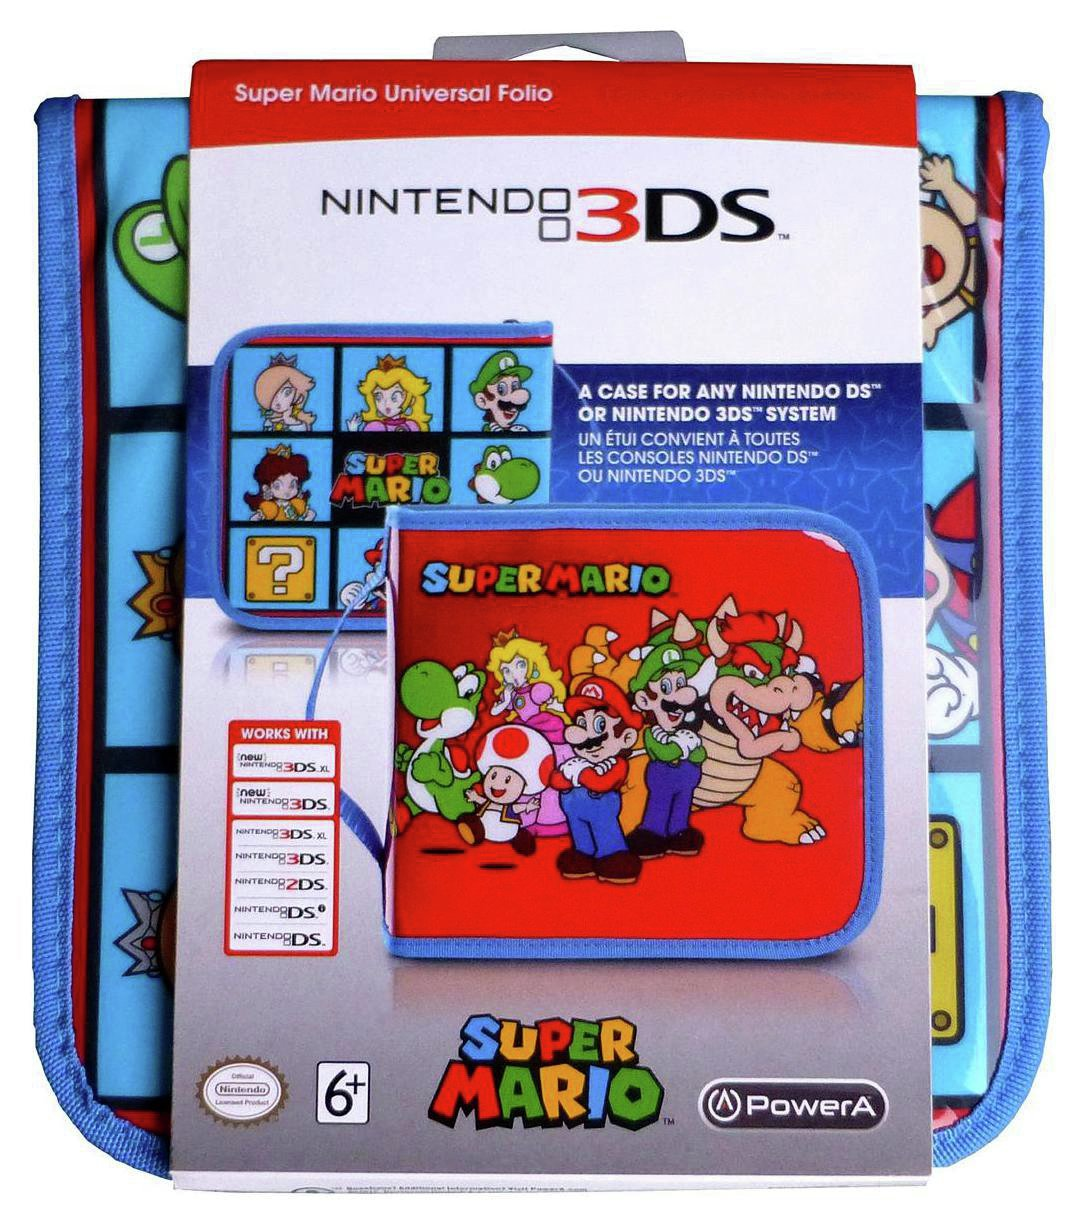 Universal Super Mario 2DS/3DS XL Folio Case